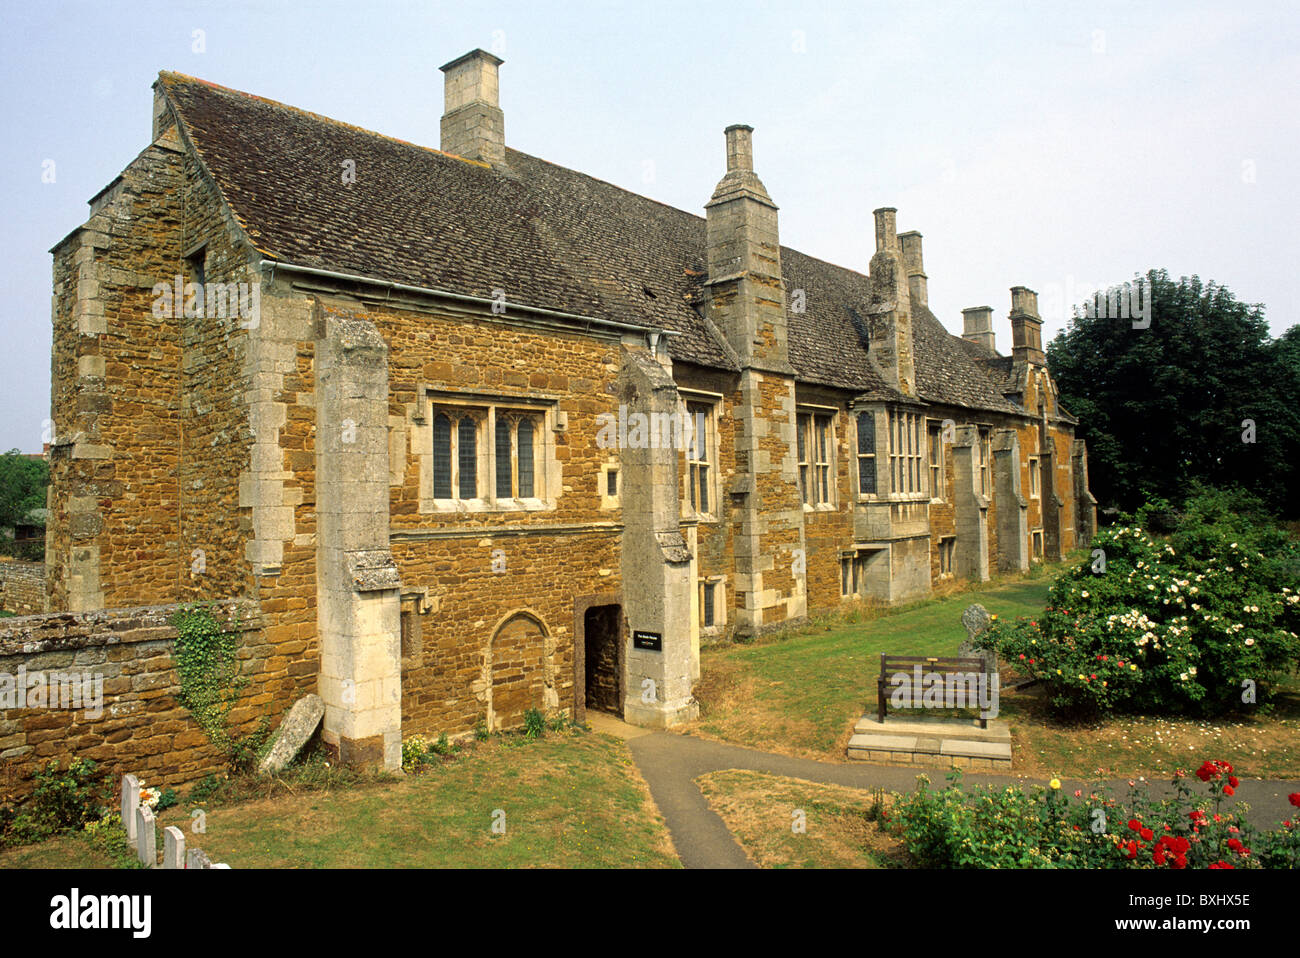 the english architecture during medieval times Medieval architecture for more than a century after the battle of hastings, all substantial stone buildings perpendicular churches are among the greatest glories of english architecture during the later decades of the 14th century there was a fashion for corner-towered rectangular castles like.